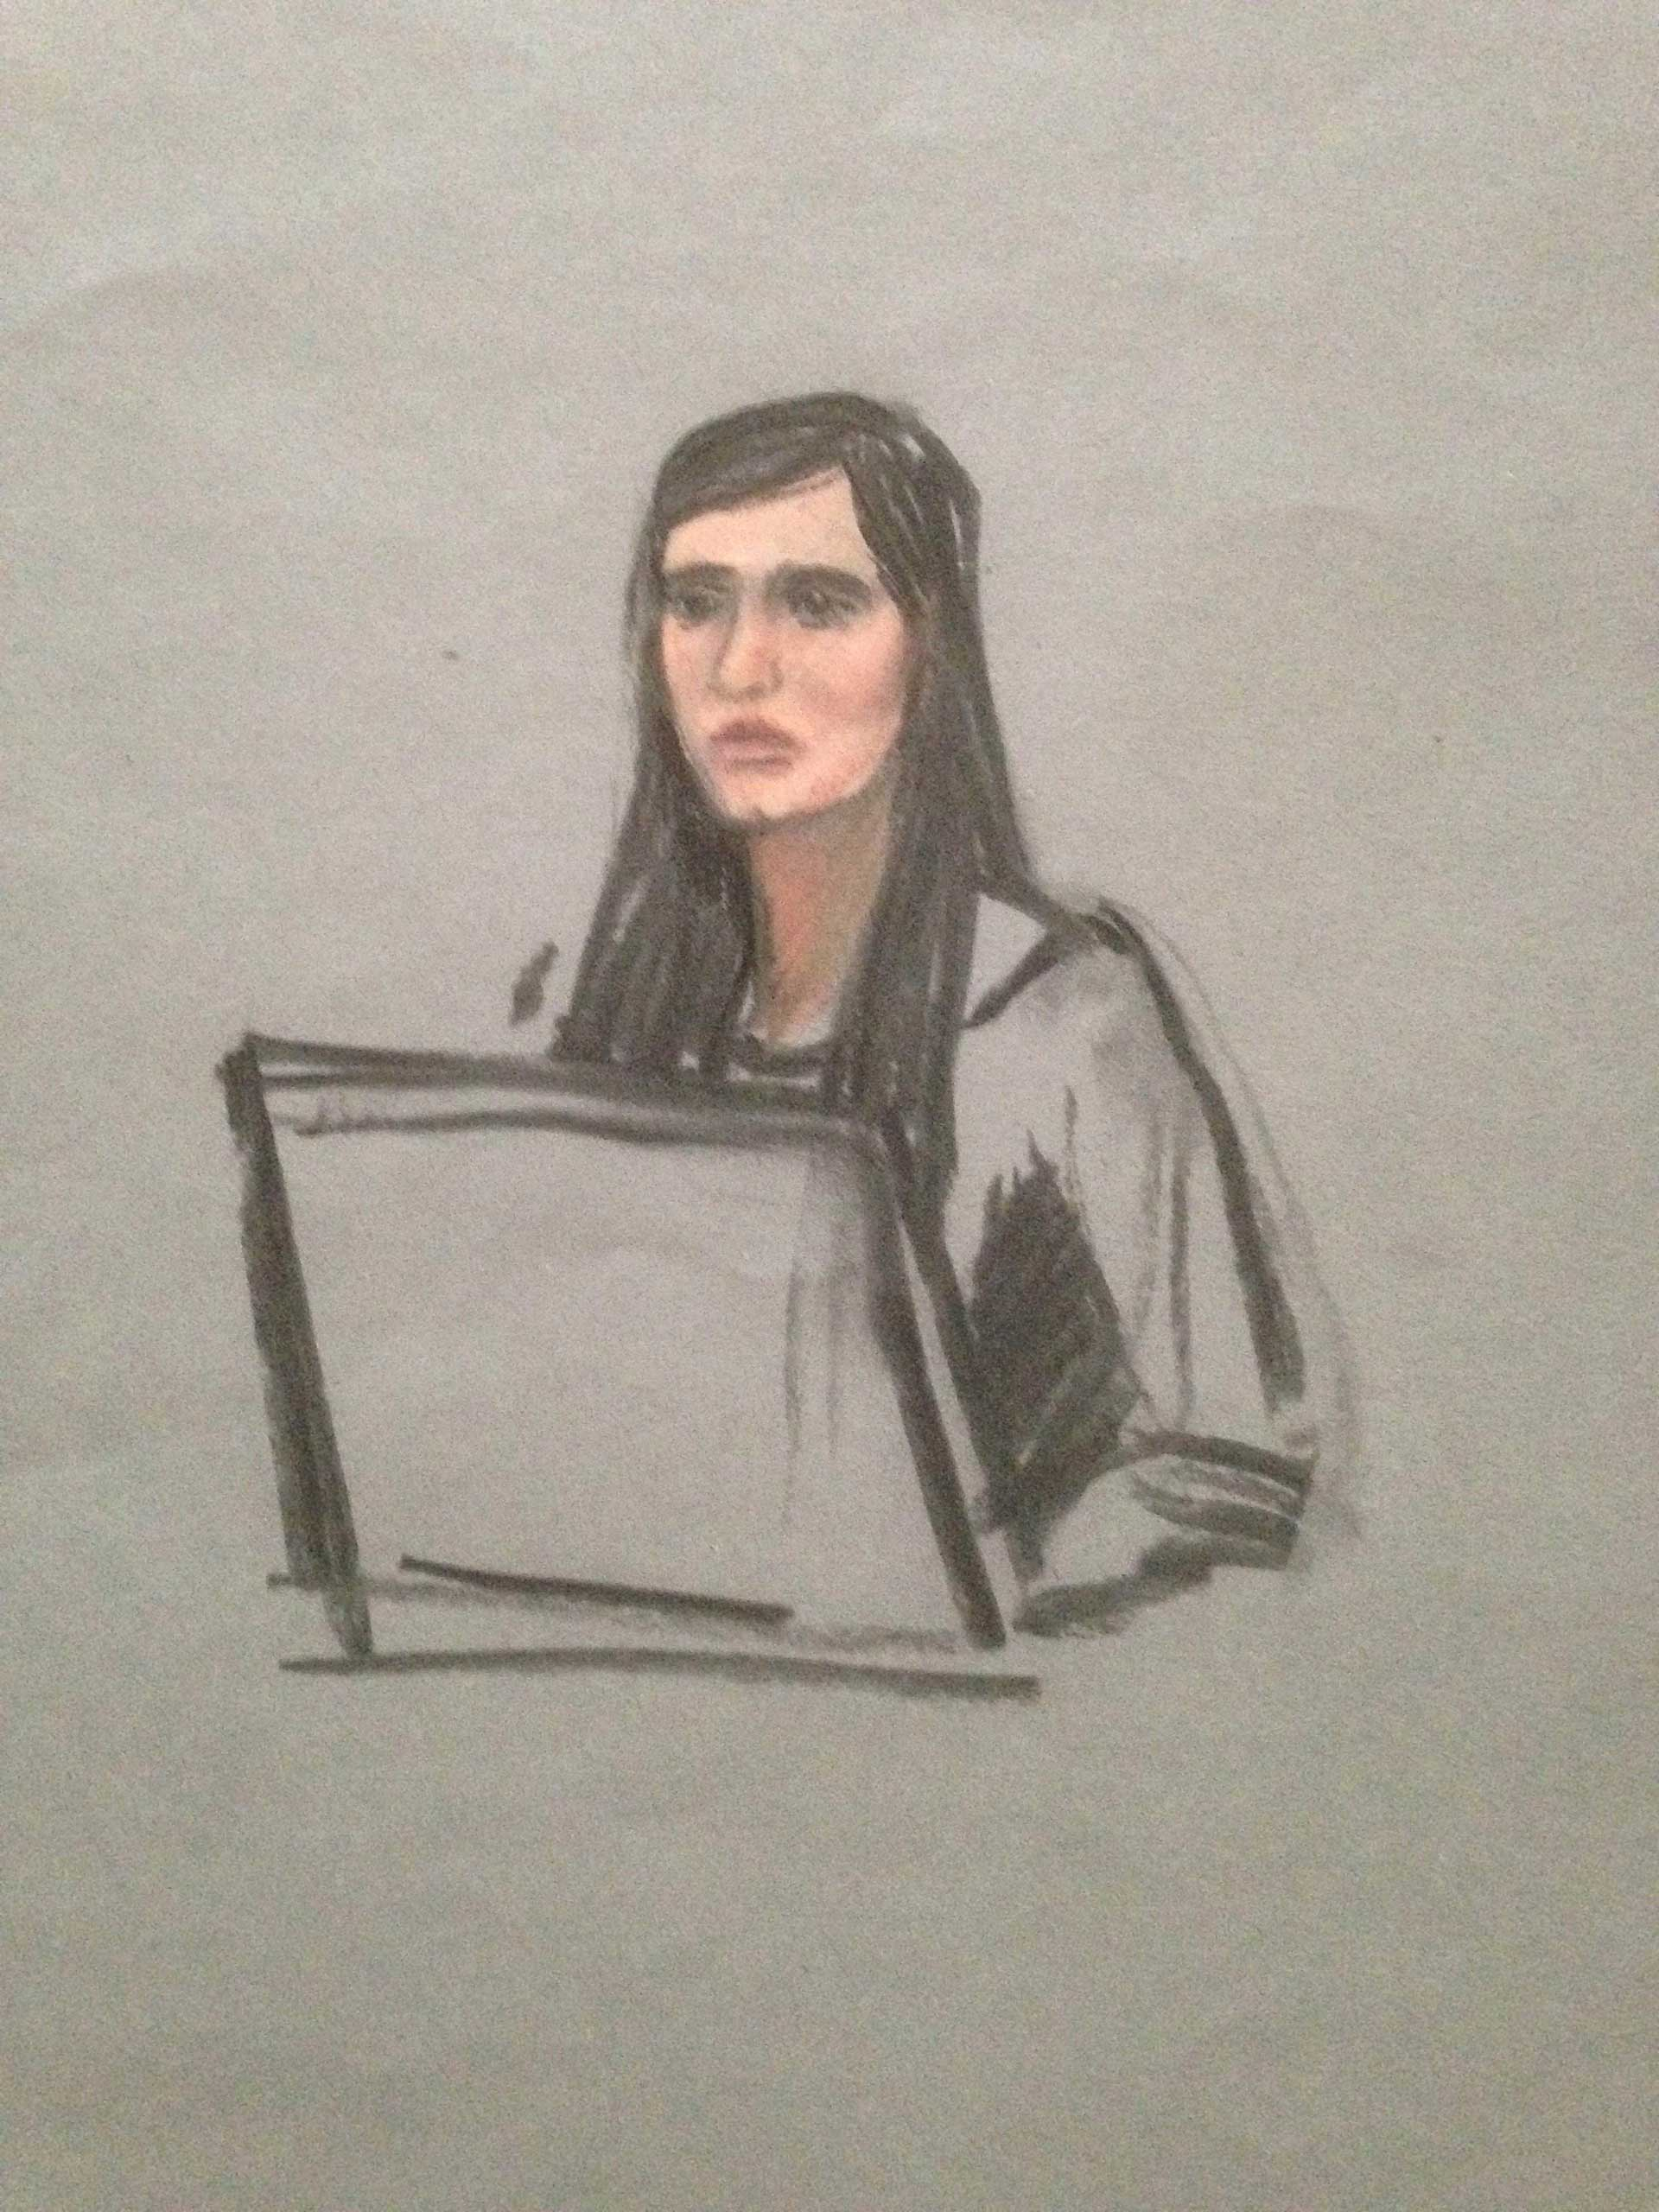 A courtroom sketch shows Boston Marathon bombing survivor Sydney Corcoran testifying in the trial of accused bomber Dzhokhar Tsarnaev at the federal courthouse in Boston, Mass., March 4, 2015.